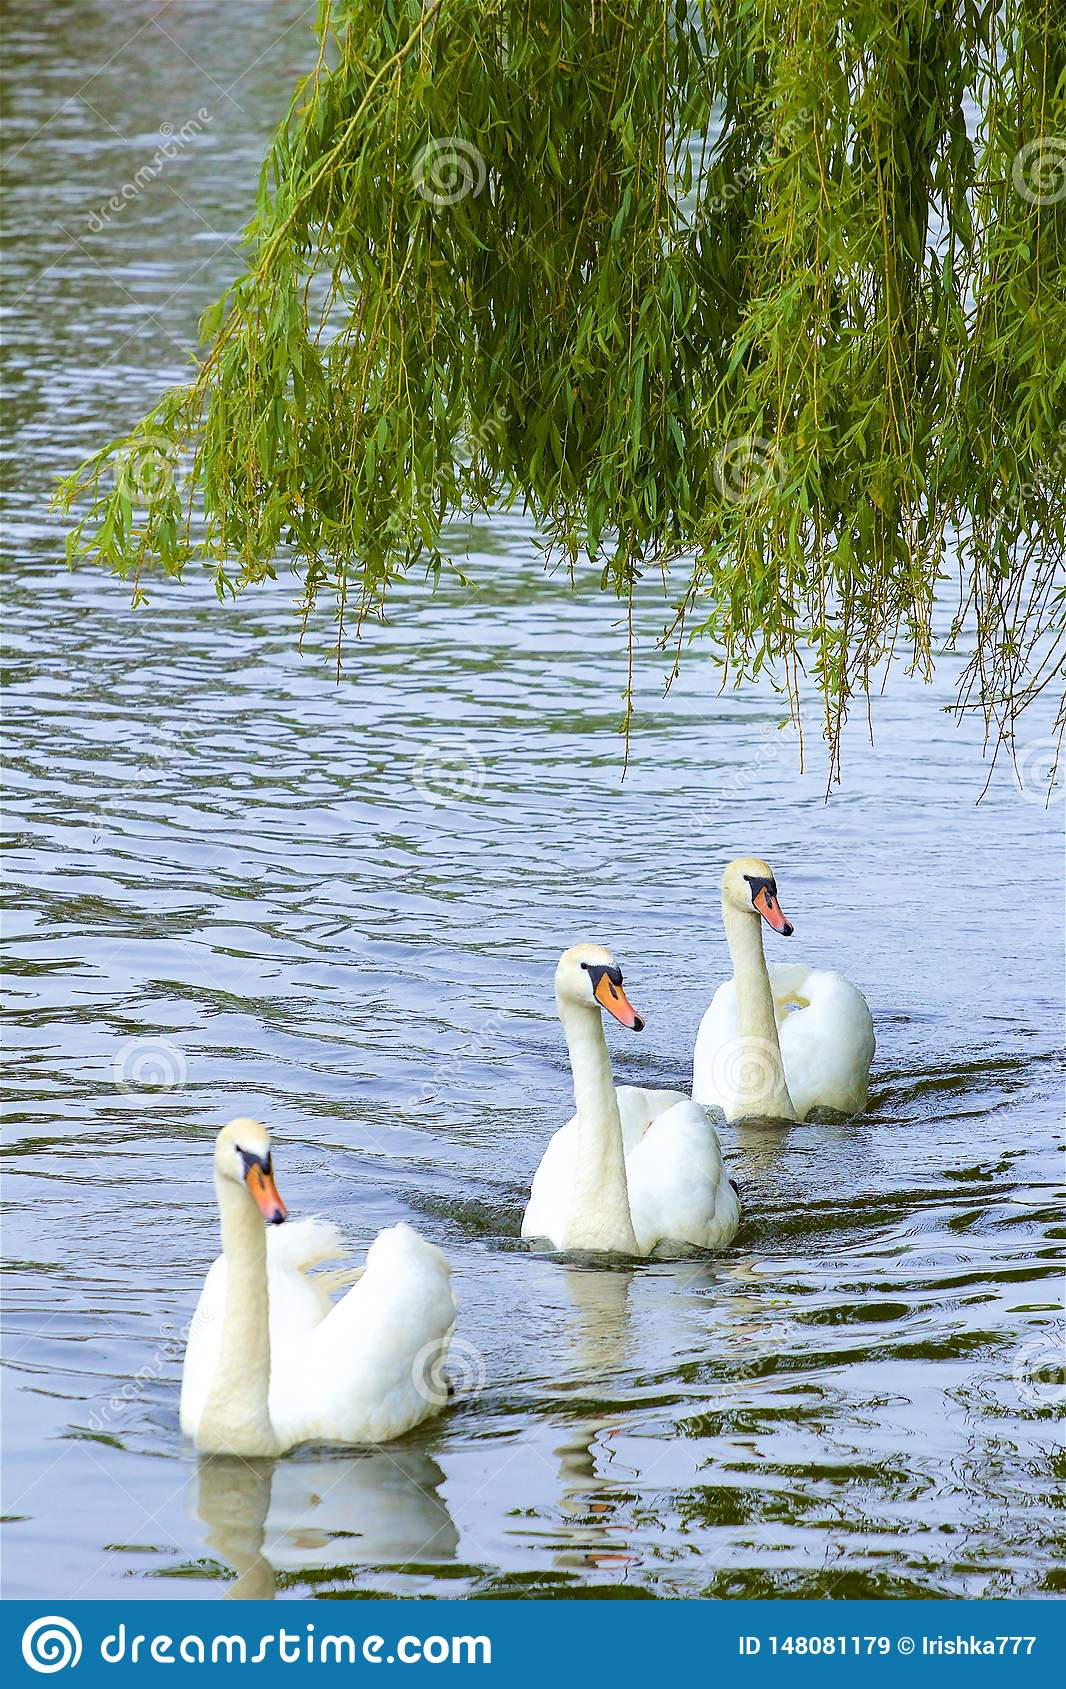 Swans in Walton-on Thames, England